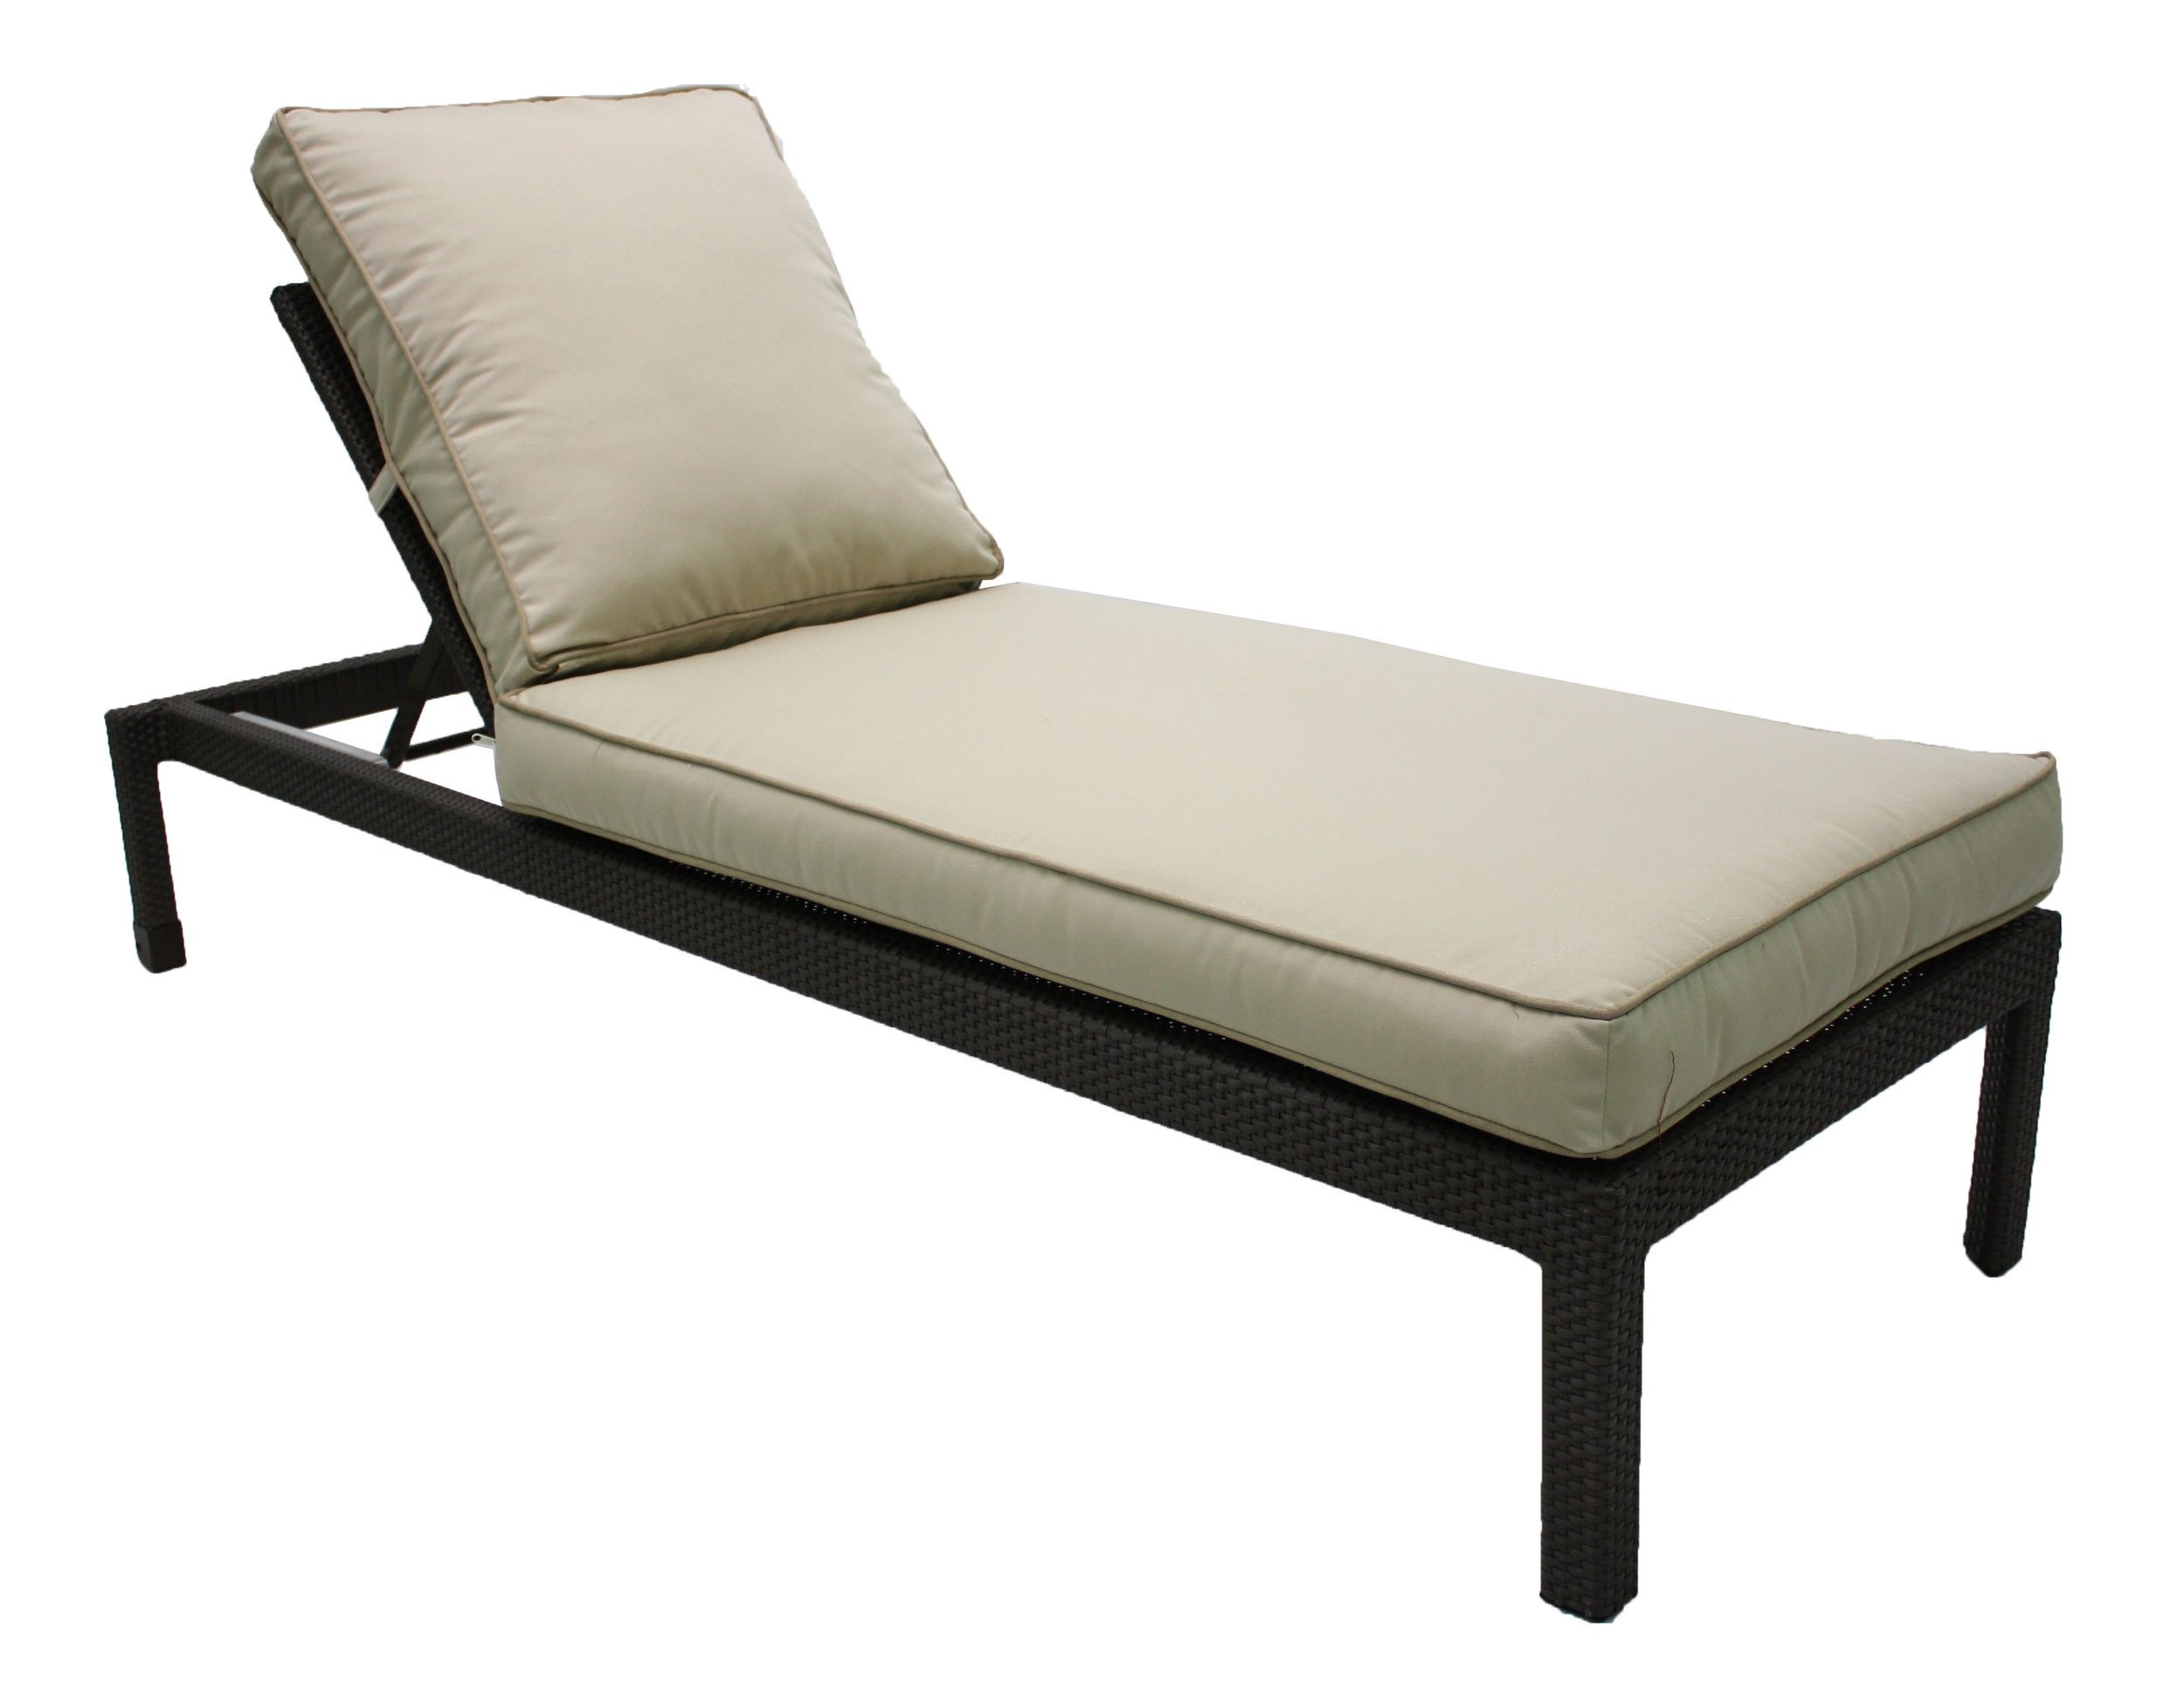 "891052 Del Mar Stackable Chaise   80"" x 30.7"" x 12.2X"